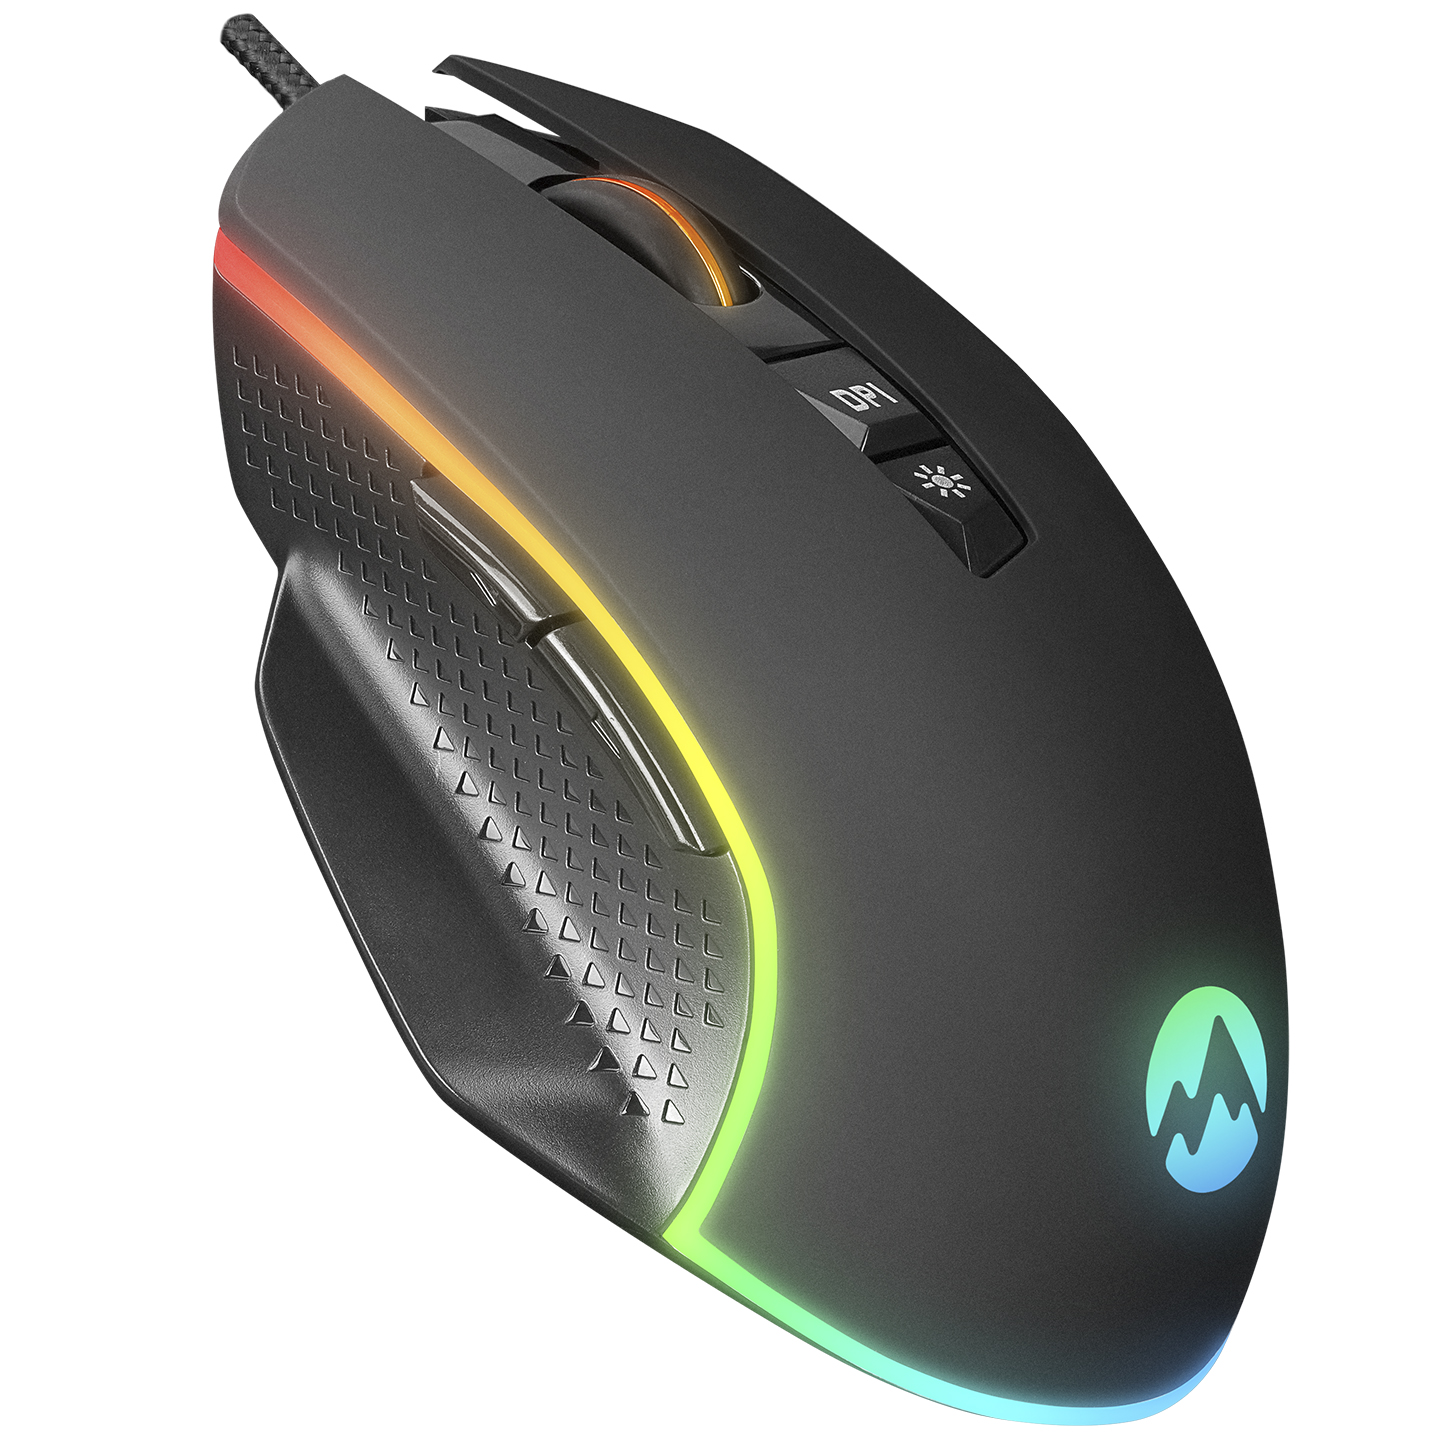 Everest RAGE-X2 Usb Siyah 800/1600/3200/4800/6400 dpi Gaming Oyuncu Mouse